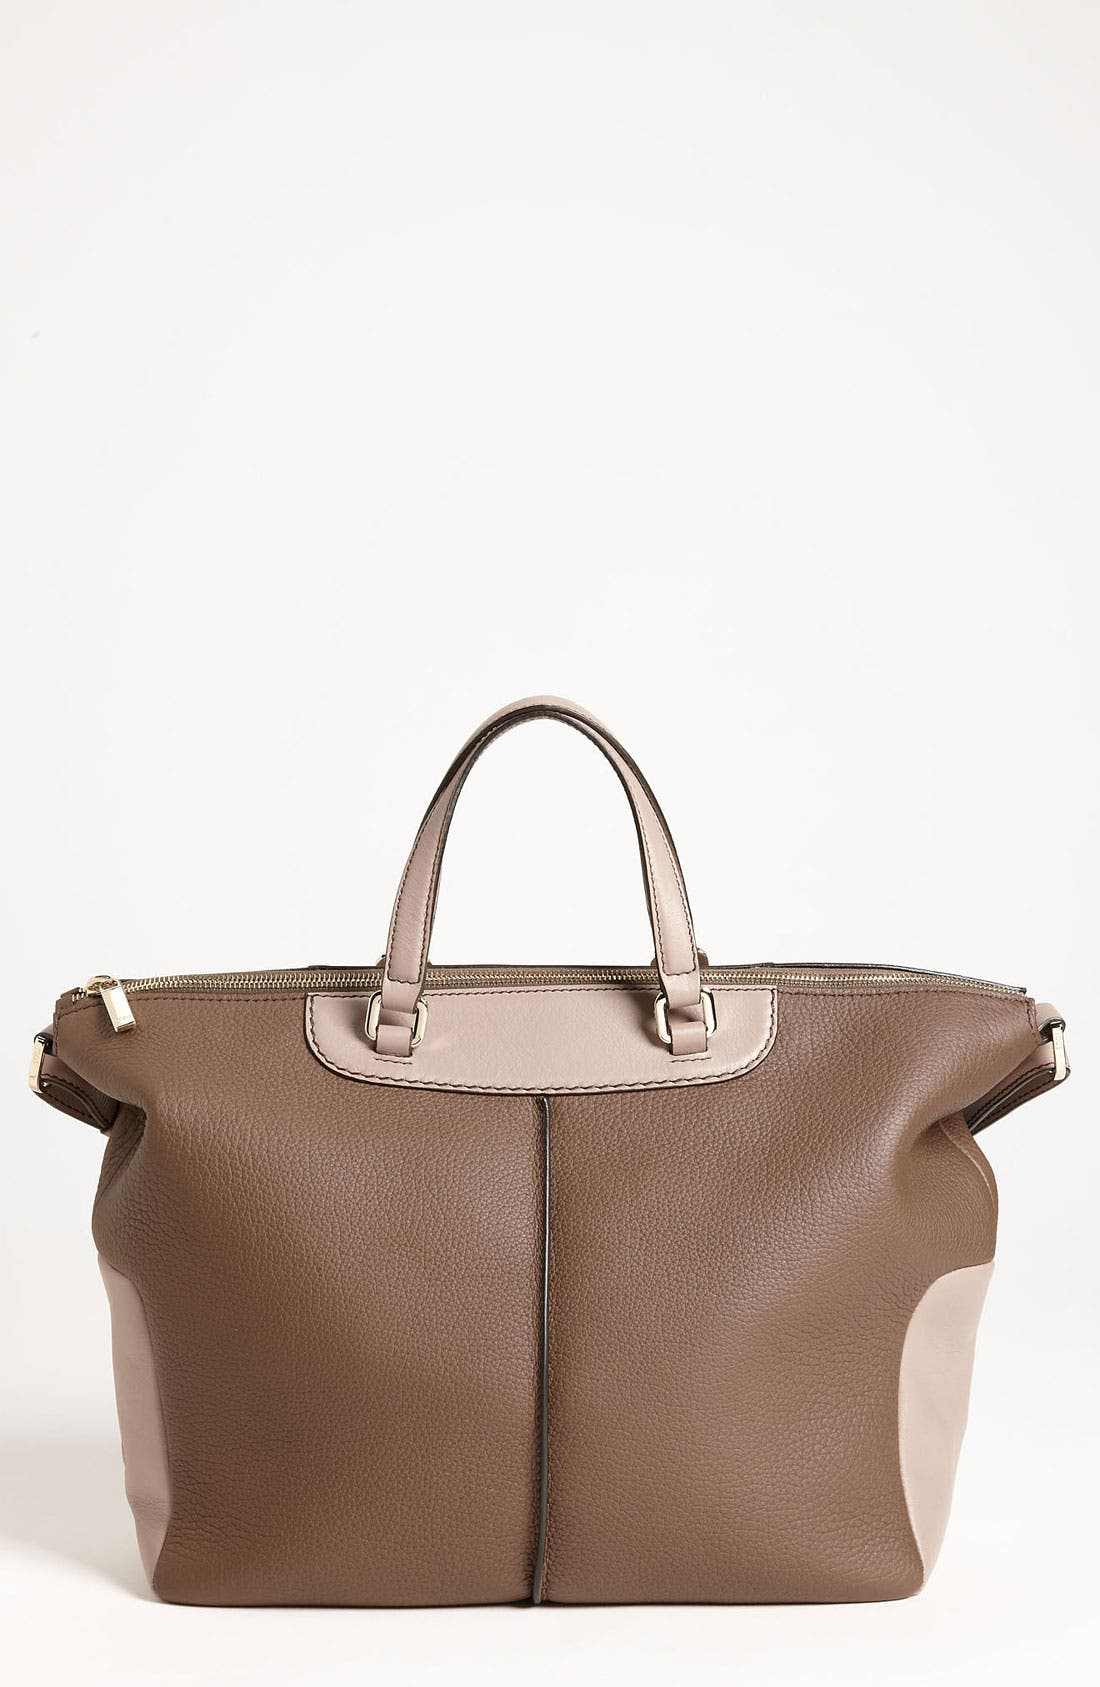 Alternate Image 1 Selected - Tod's 'Classic - Medium' Leather Tote